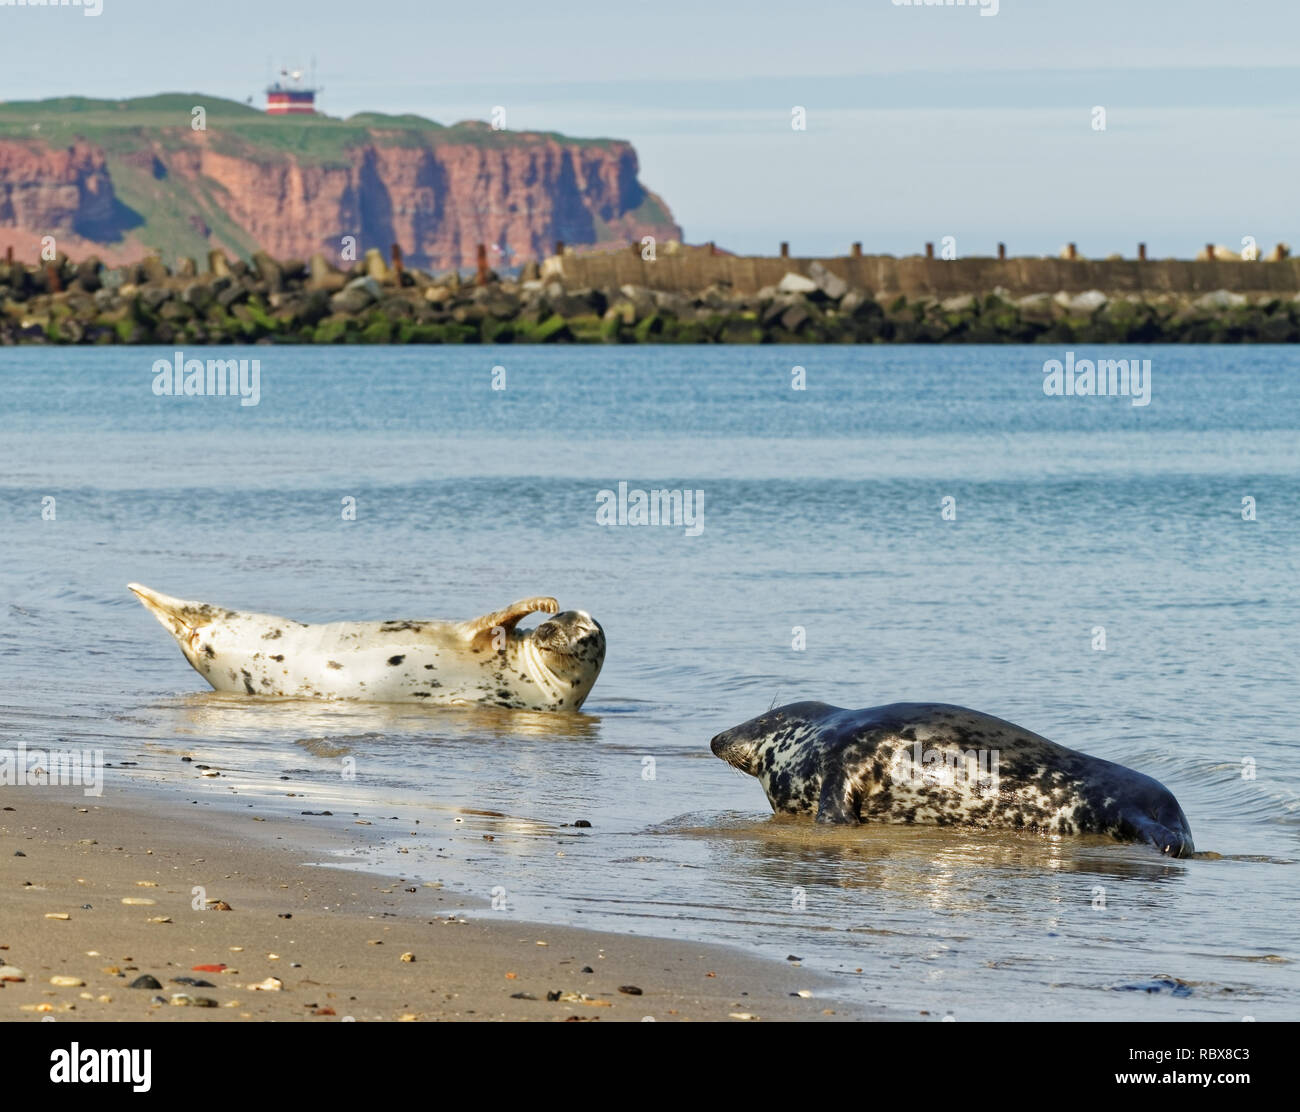 Two gray seals on the beach of the german North Sea island Helgoland, in the background the red steep bank can be seen - Stock Image